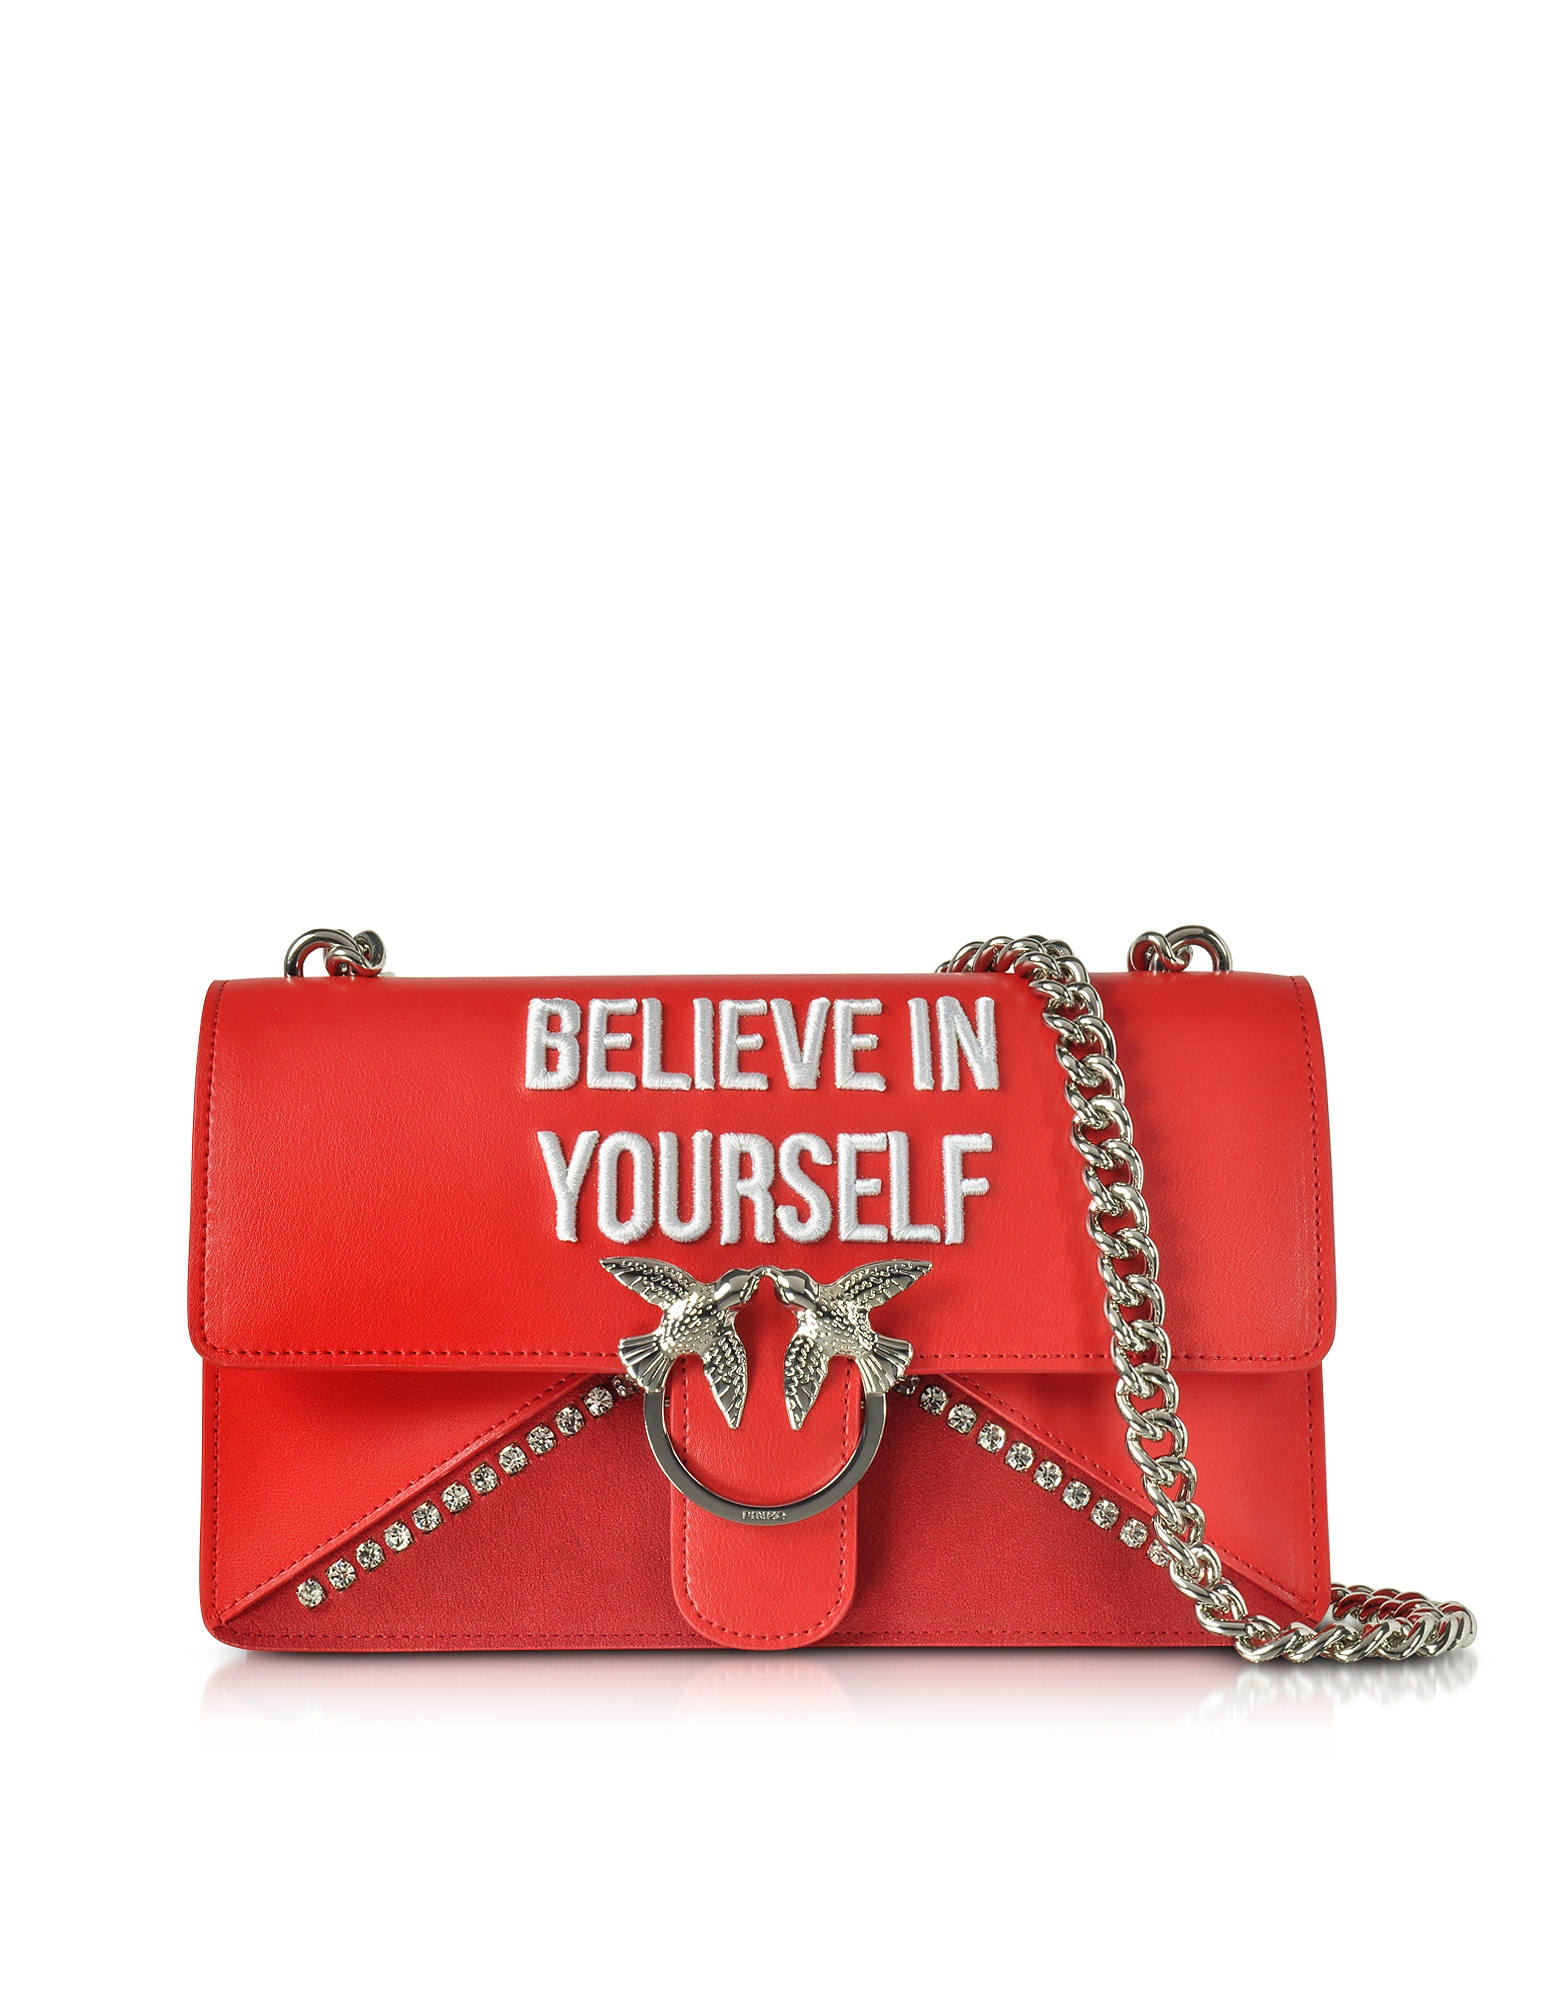 Pinko Handbags, Love Believe In Yourself Red Eco Leather Shoulder Bag